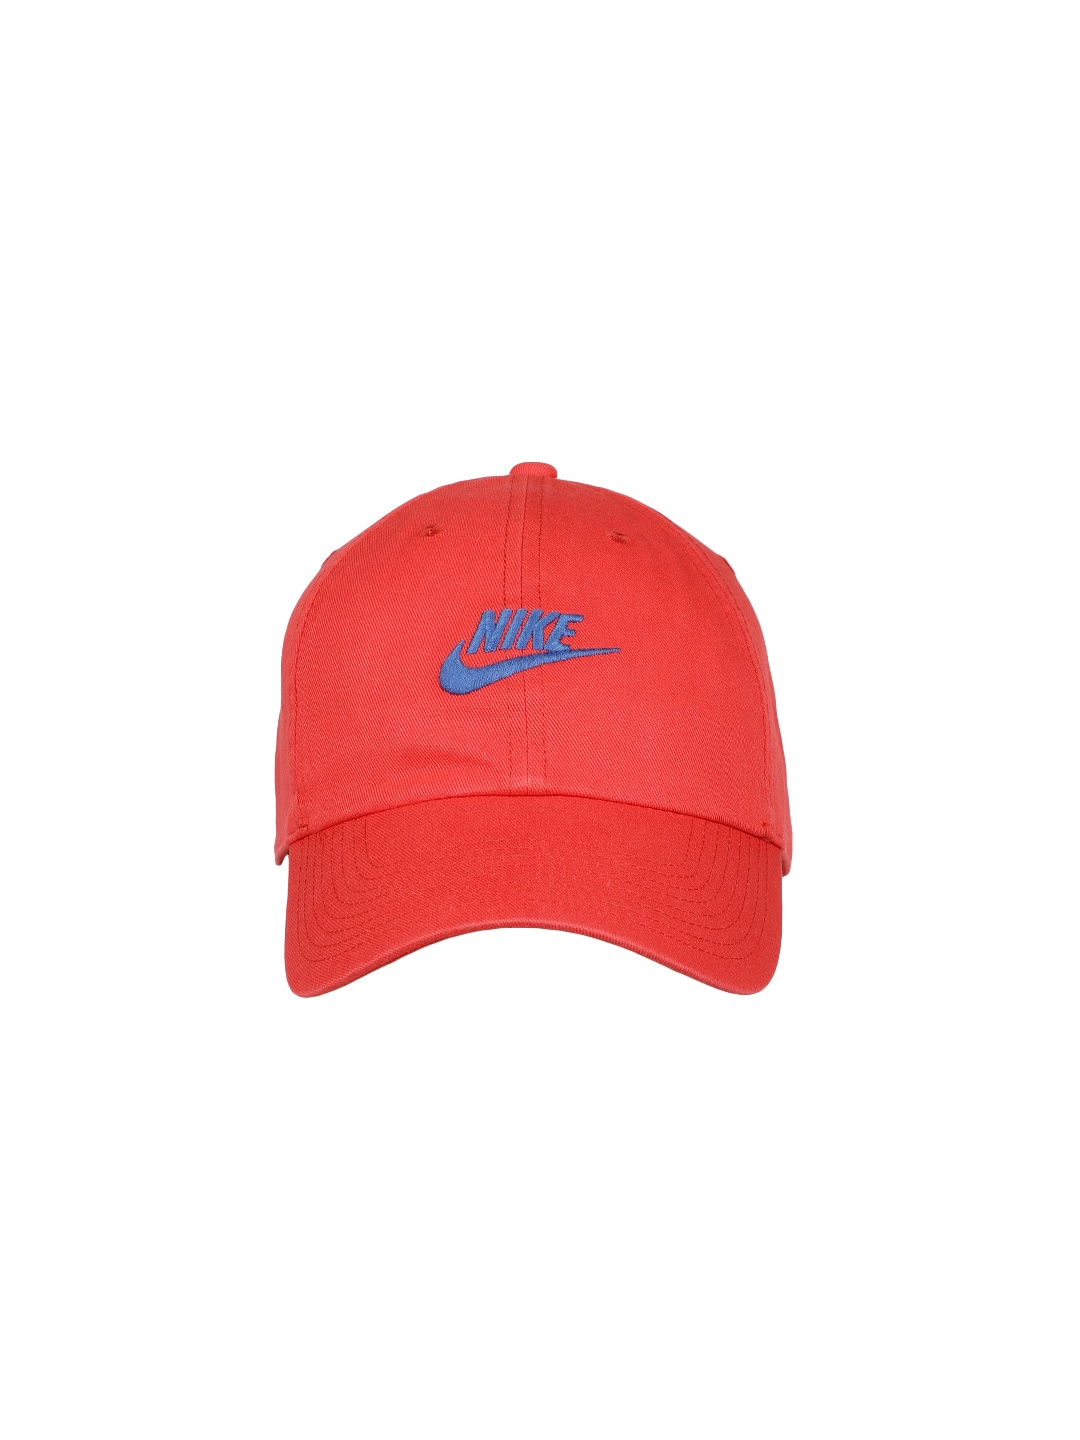 d6570cdb015 Nike Cap - Buy Nike Caps for Men   Women Online in India